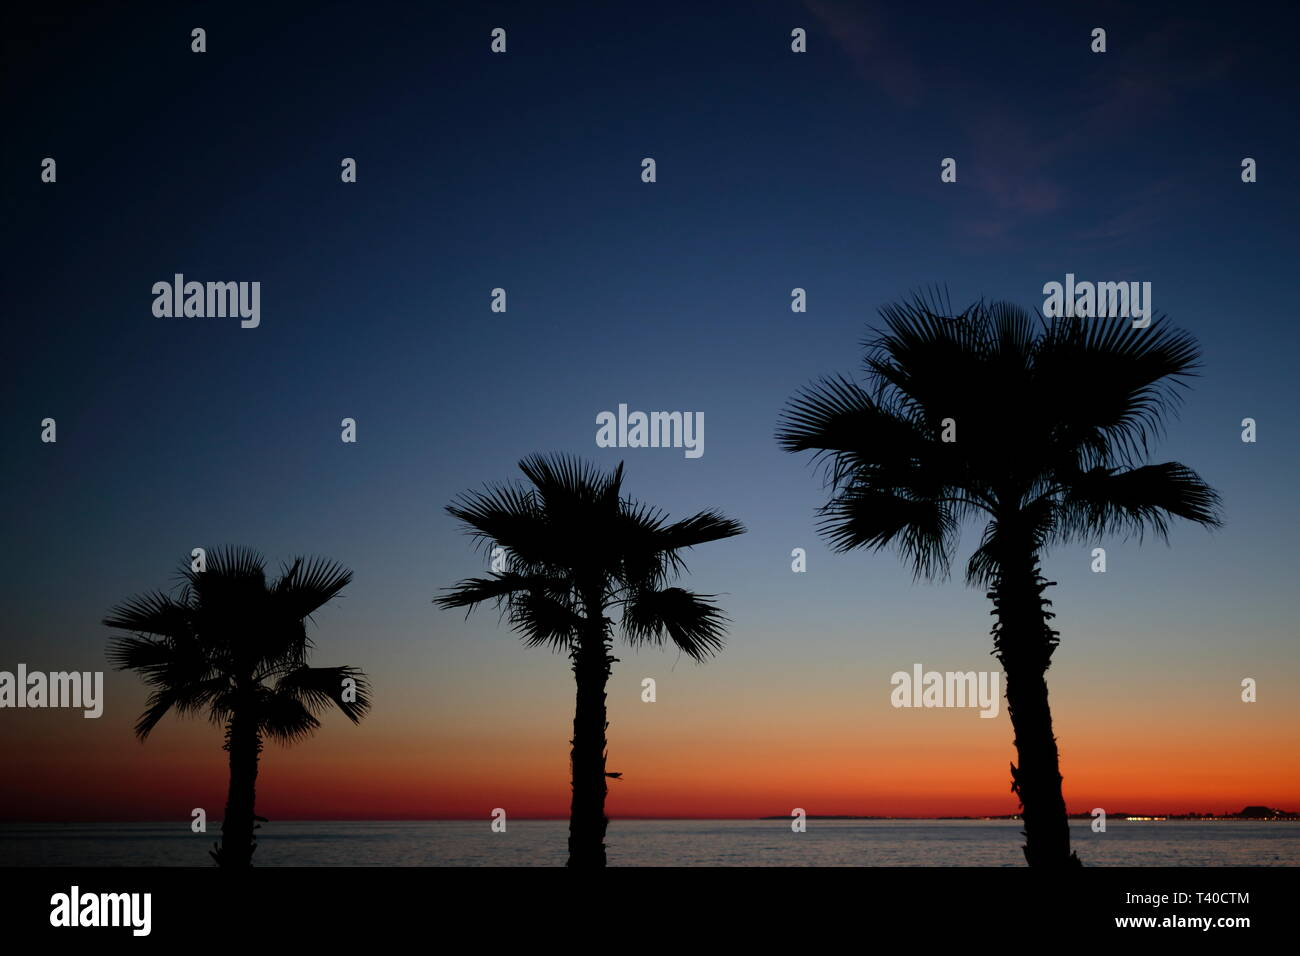 Playa Paraiso (Villajoiosa) Spain - Stock Image